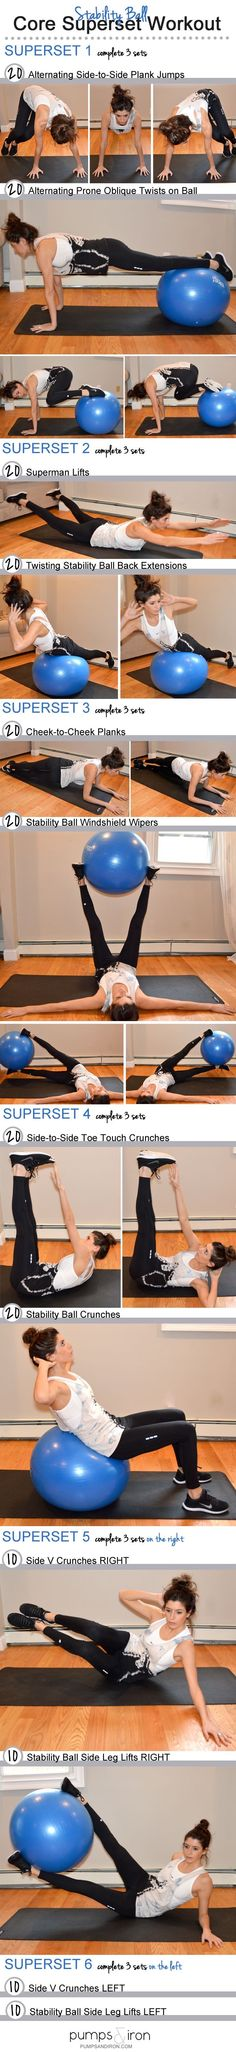 Core Superset Workout | Posted By: CustomWeightLossProgram.com